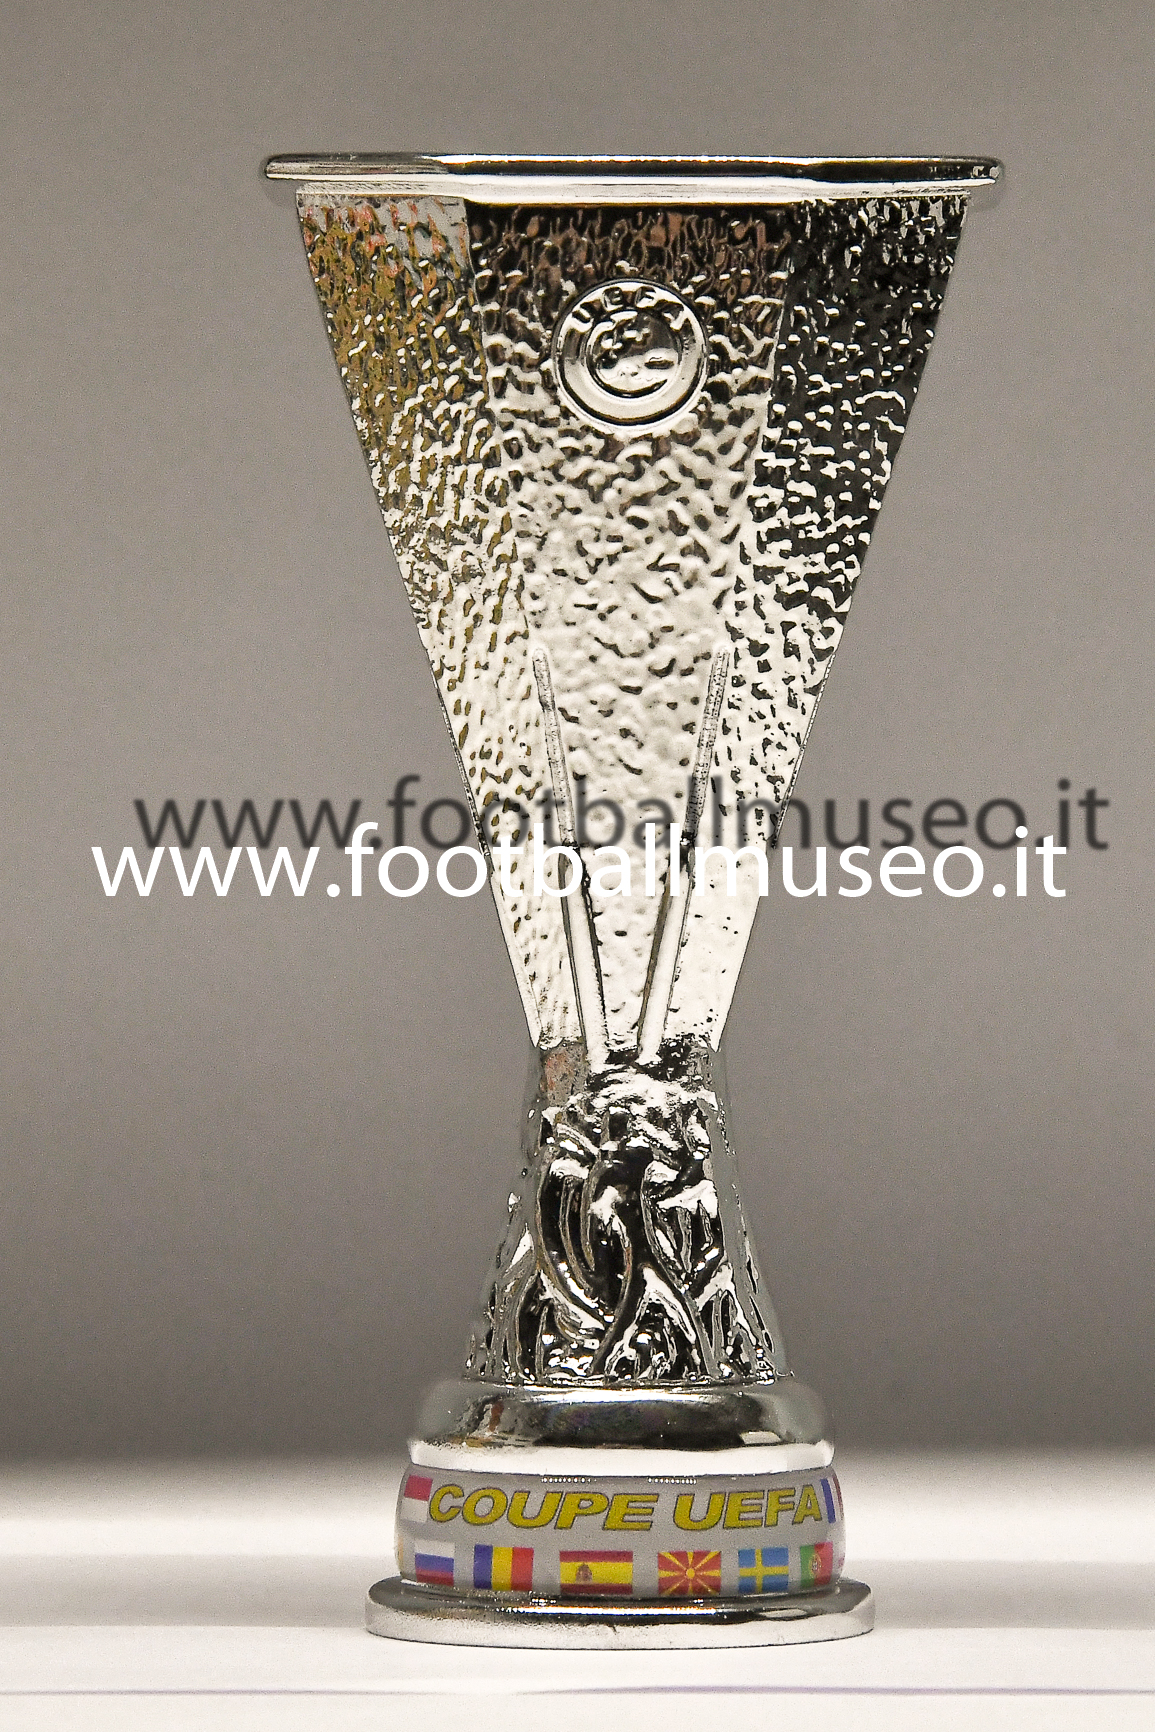 UEFA CUP REPLY 1: 4